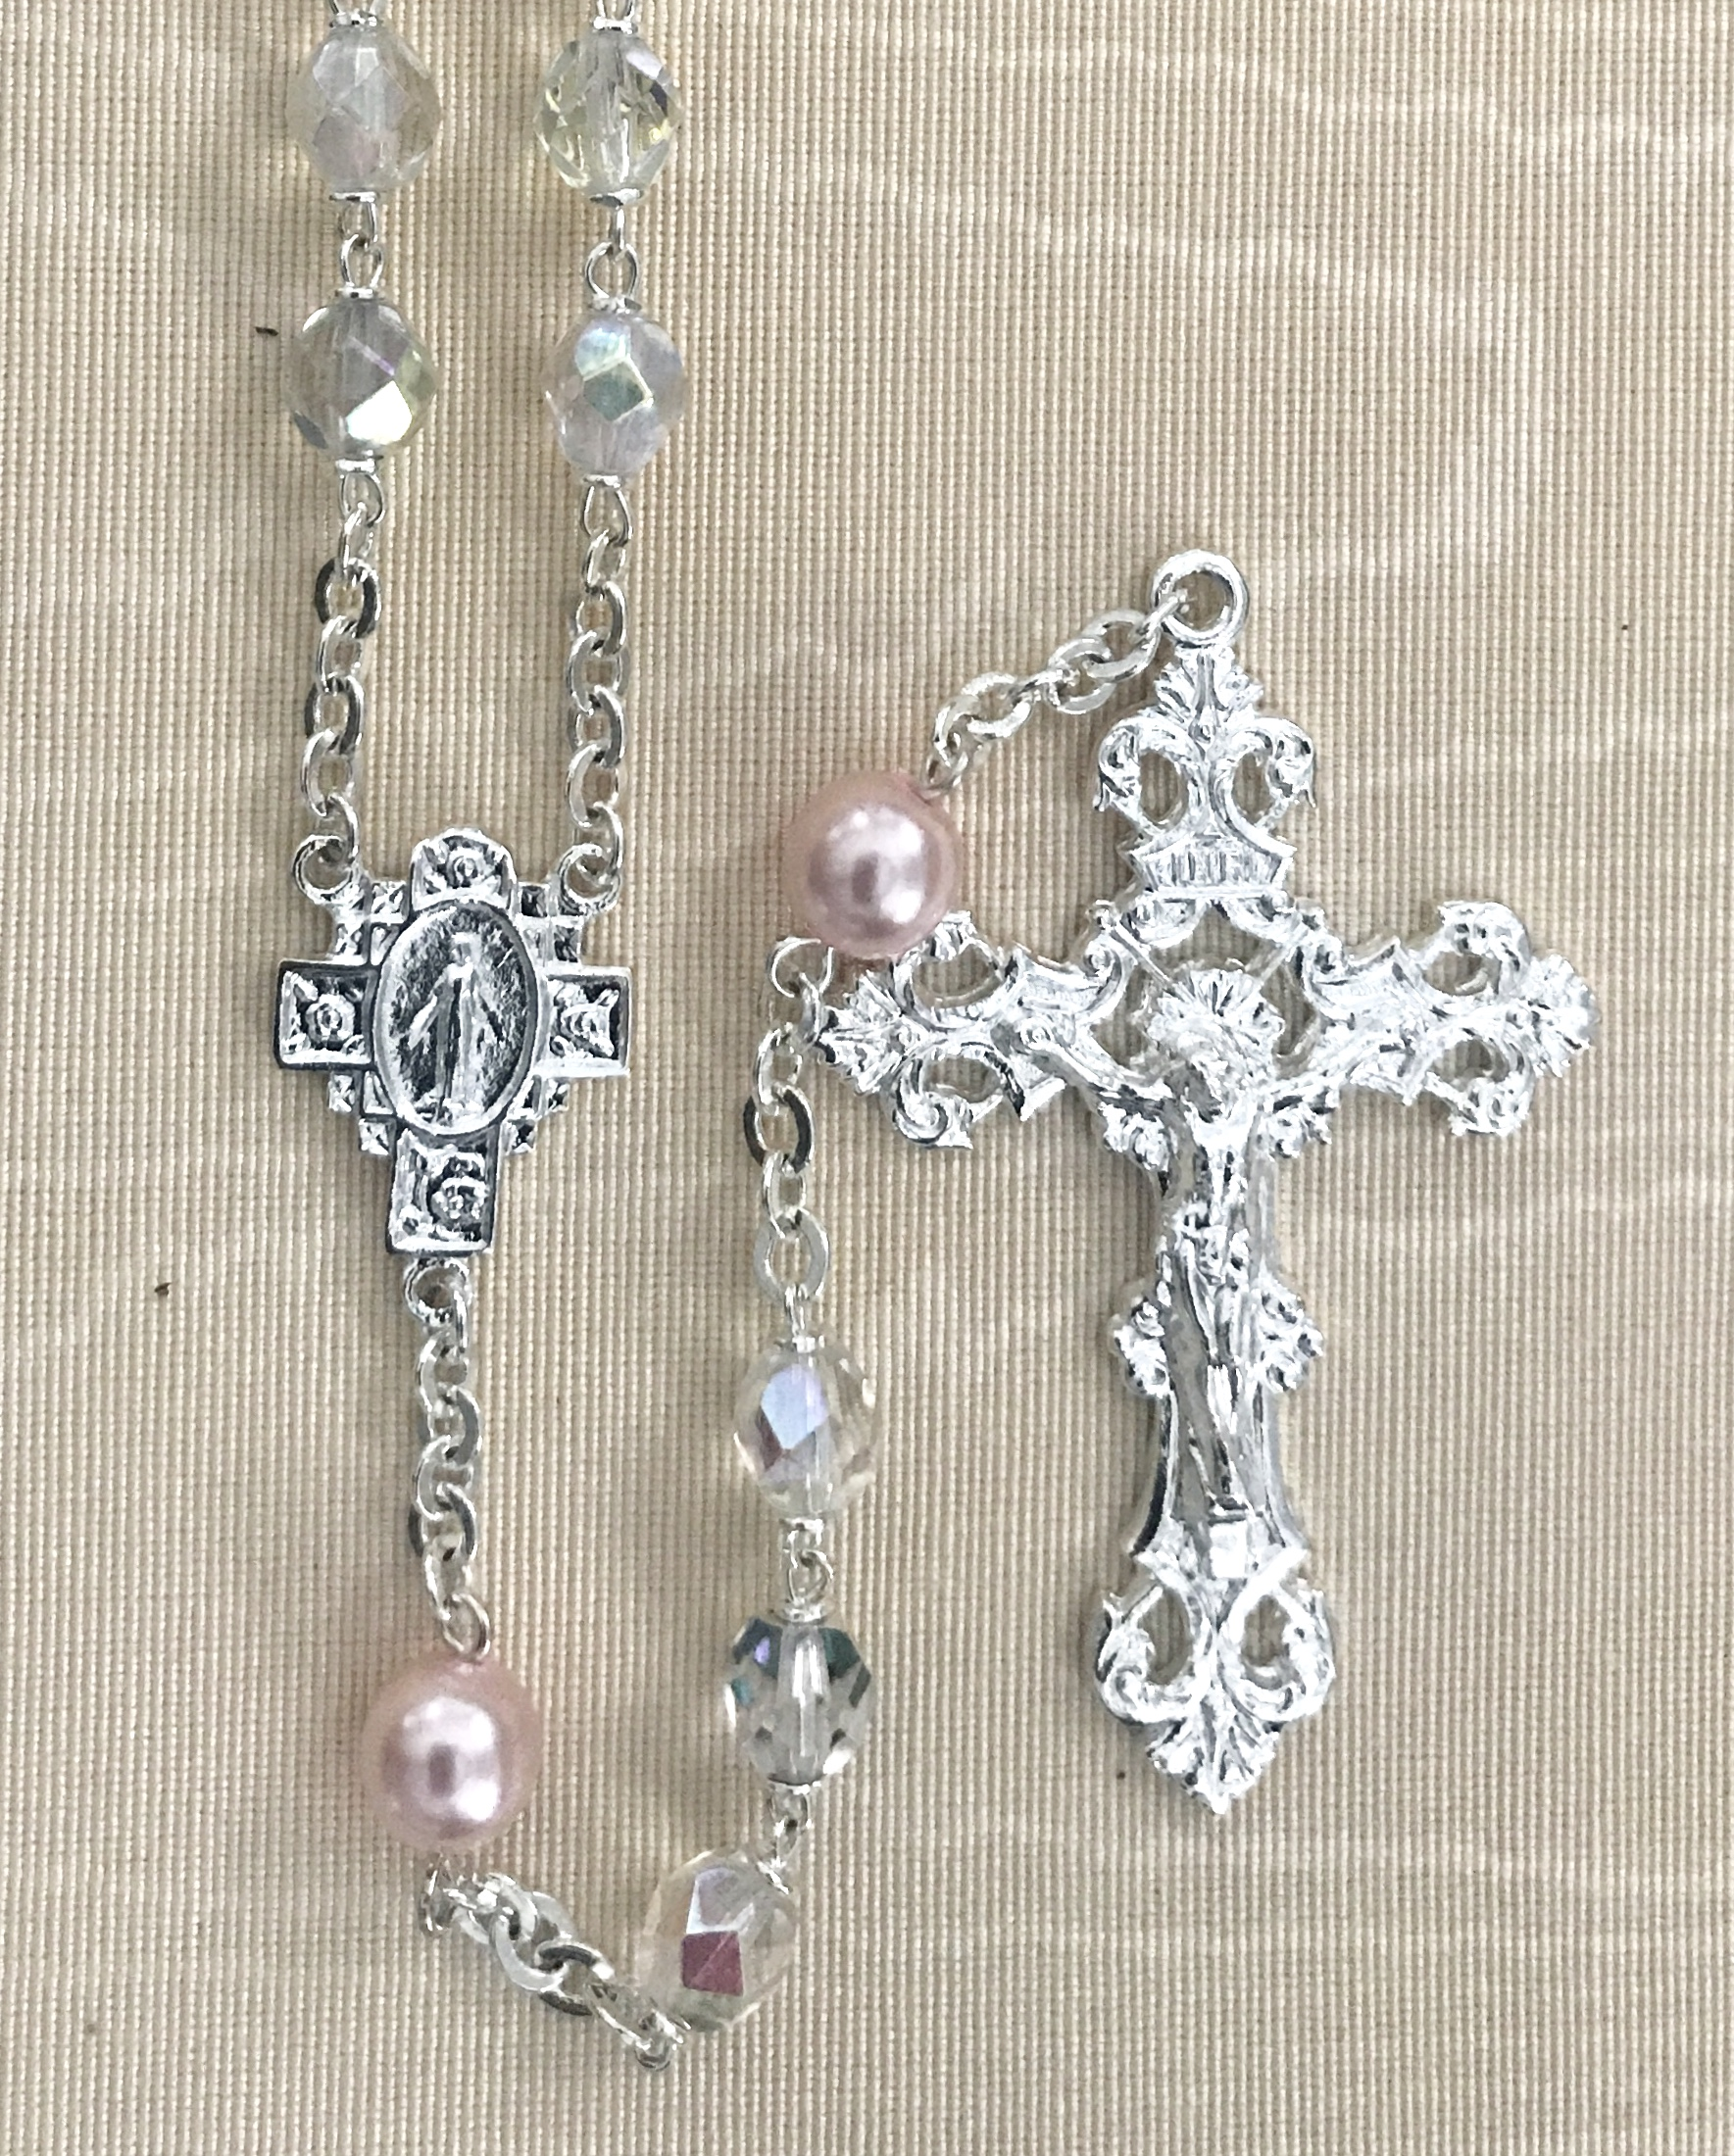 October 7mm CRYSTAL AB with ROSE PEARL OURFATHER BEADS  S.S. PLATE LOC-LINK - GIFT BOXED